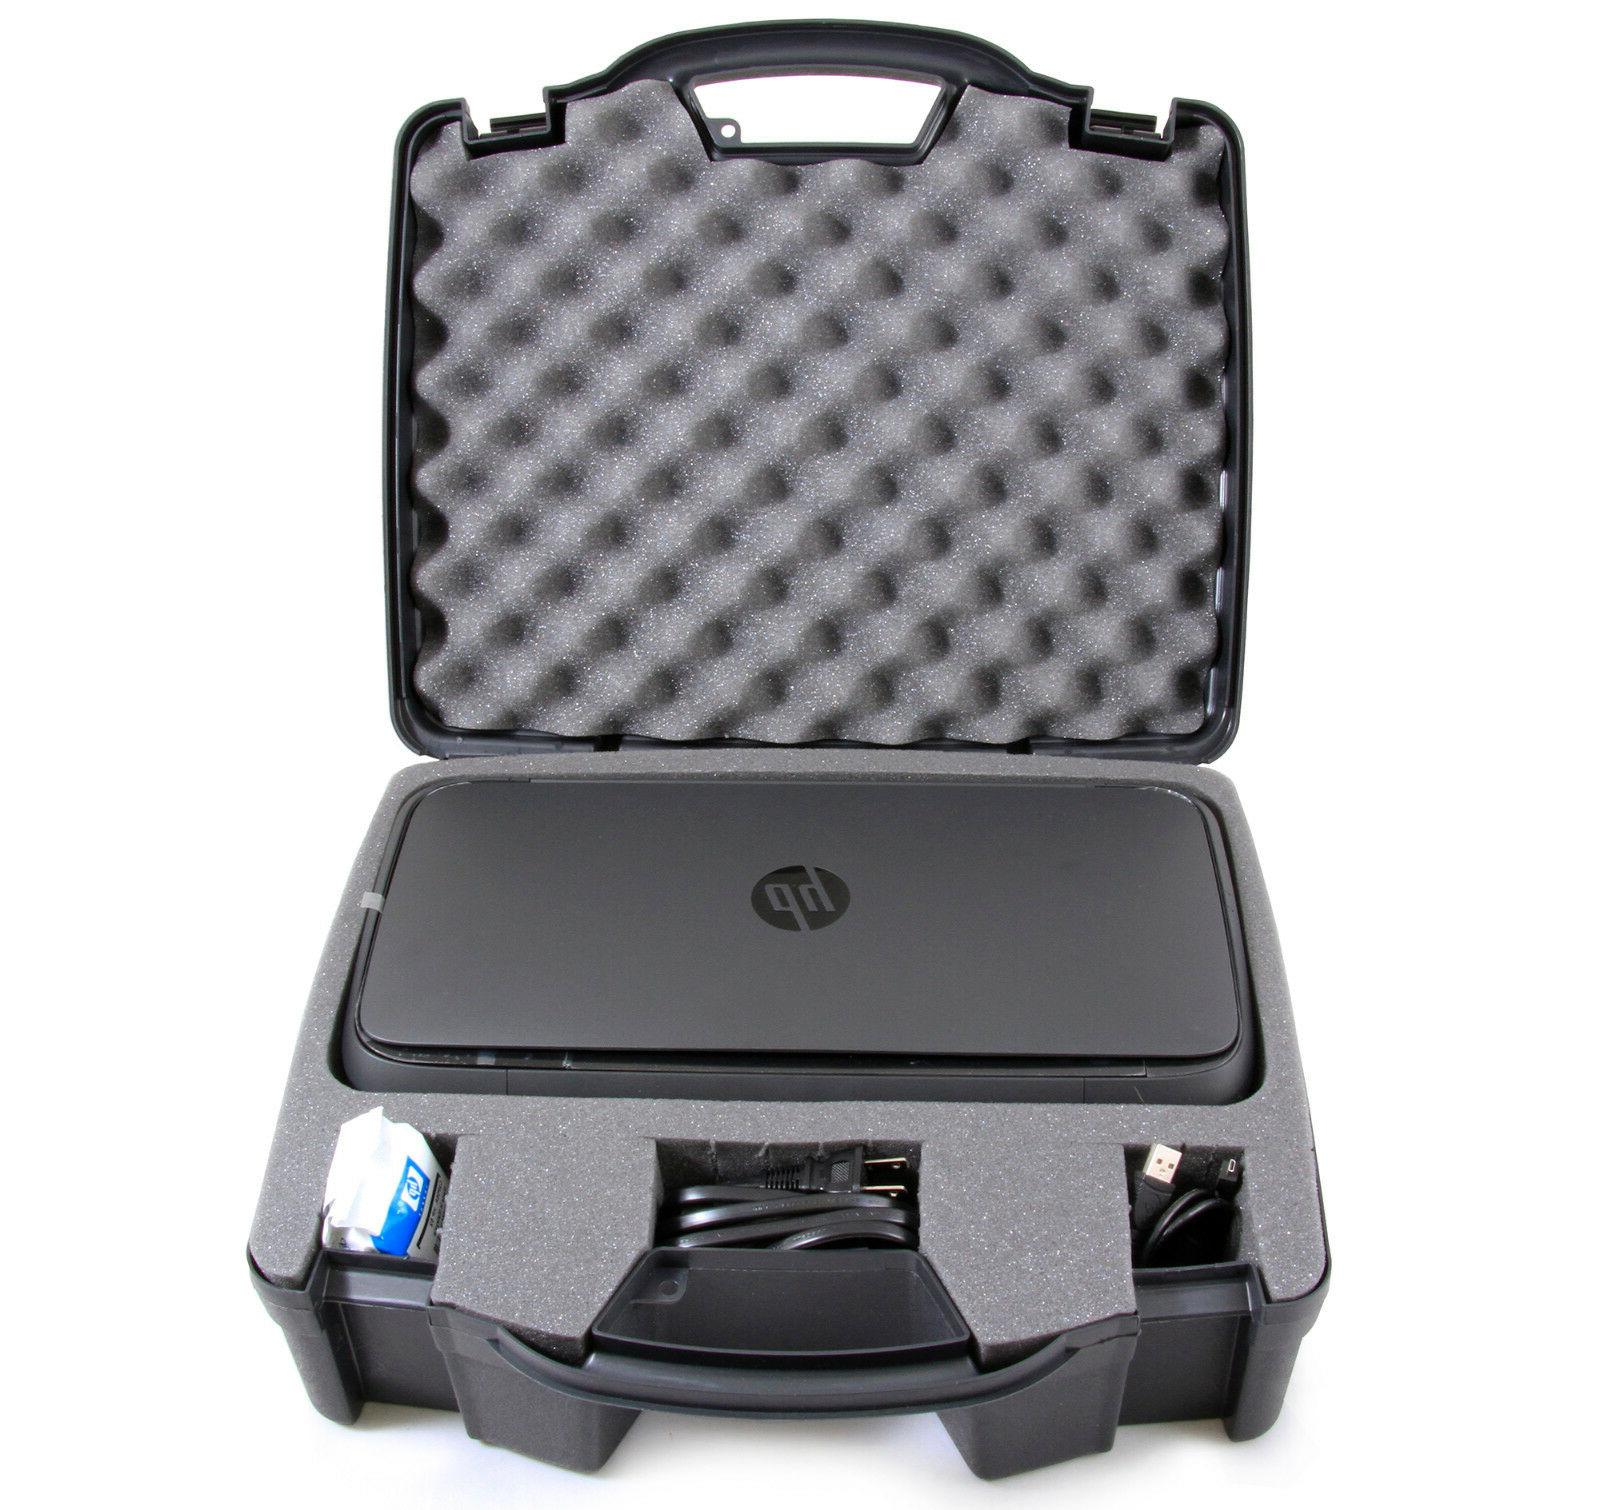 portable printer case for hp officejet 250